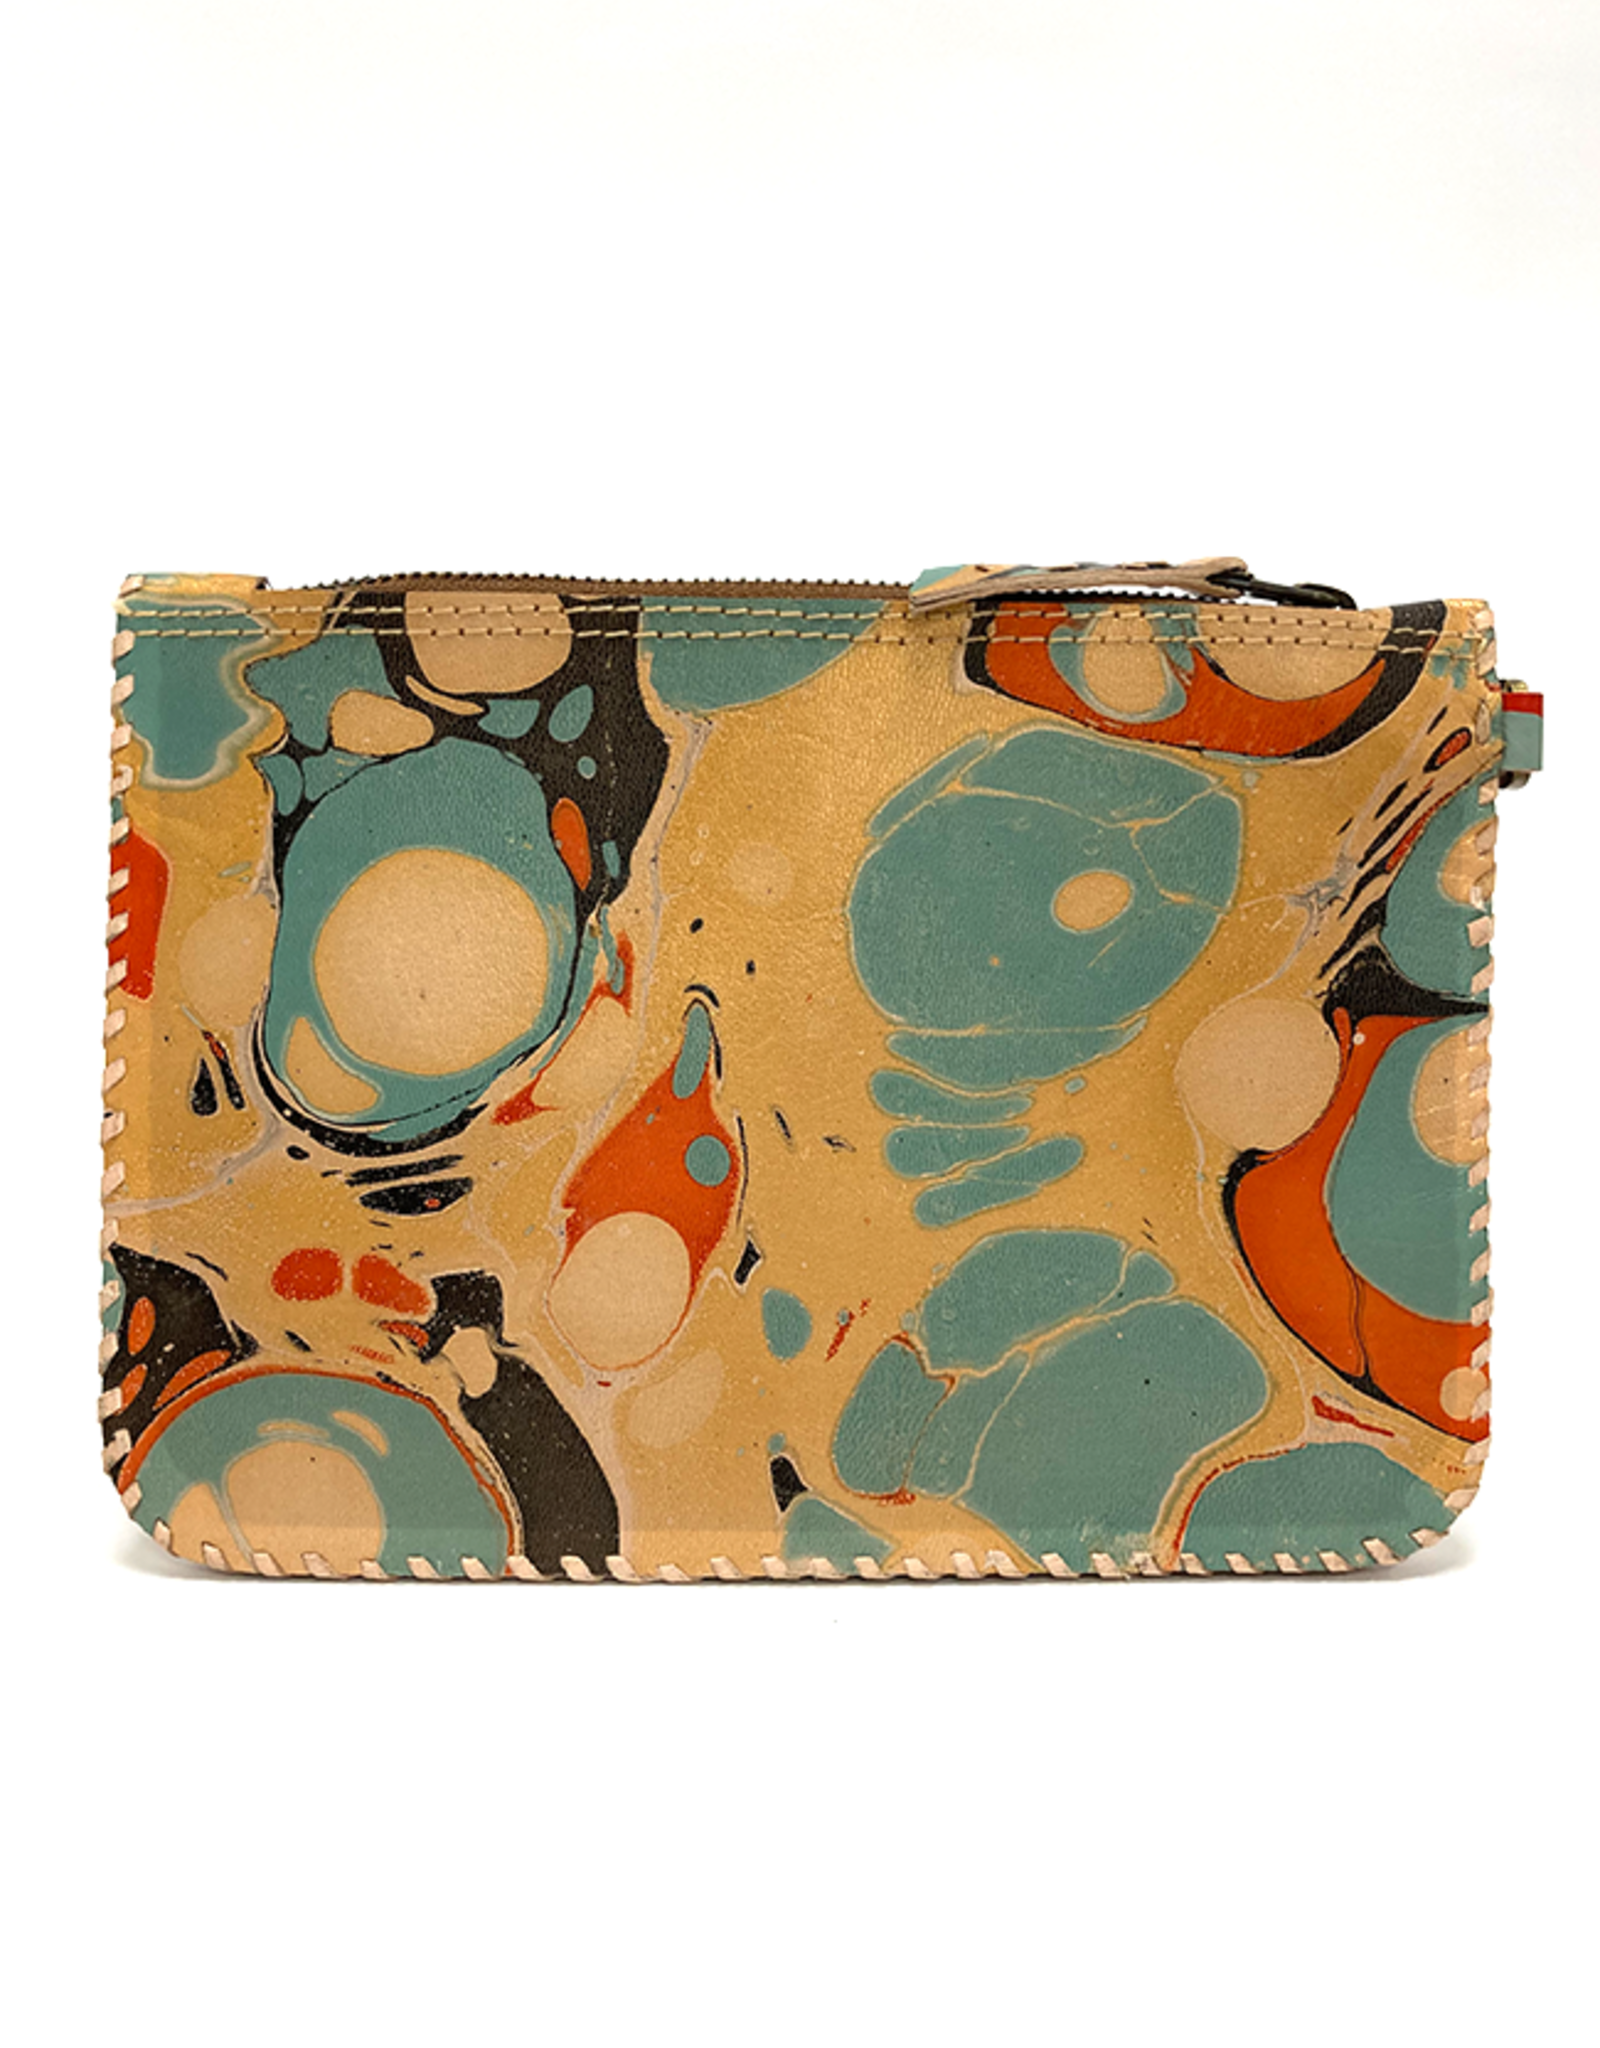 Gold Aqua Marbled Leather Wristlet Pouch